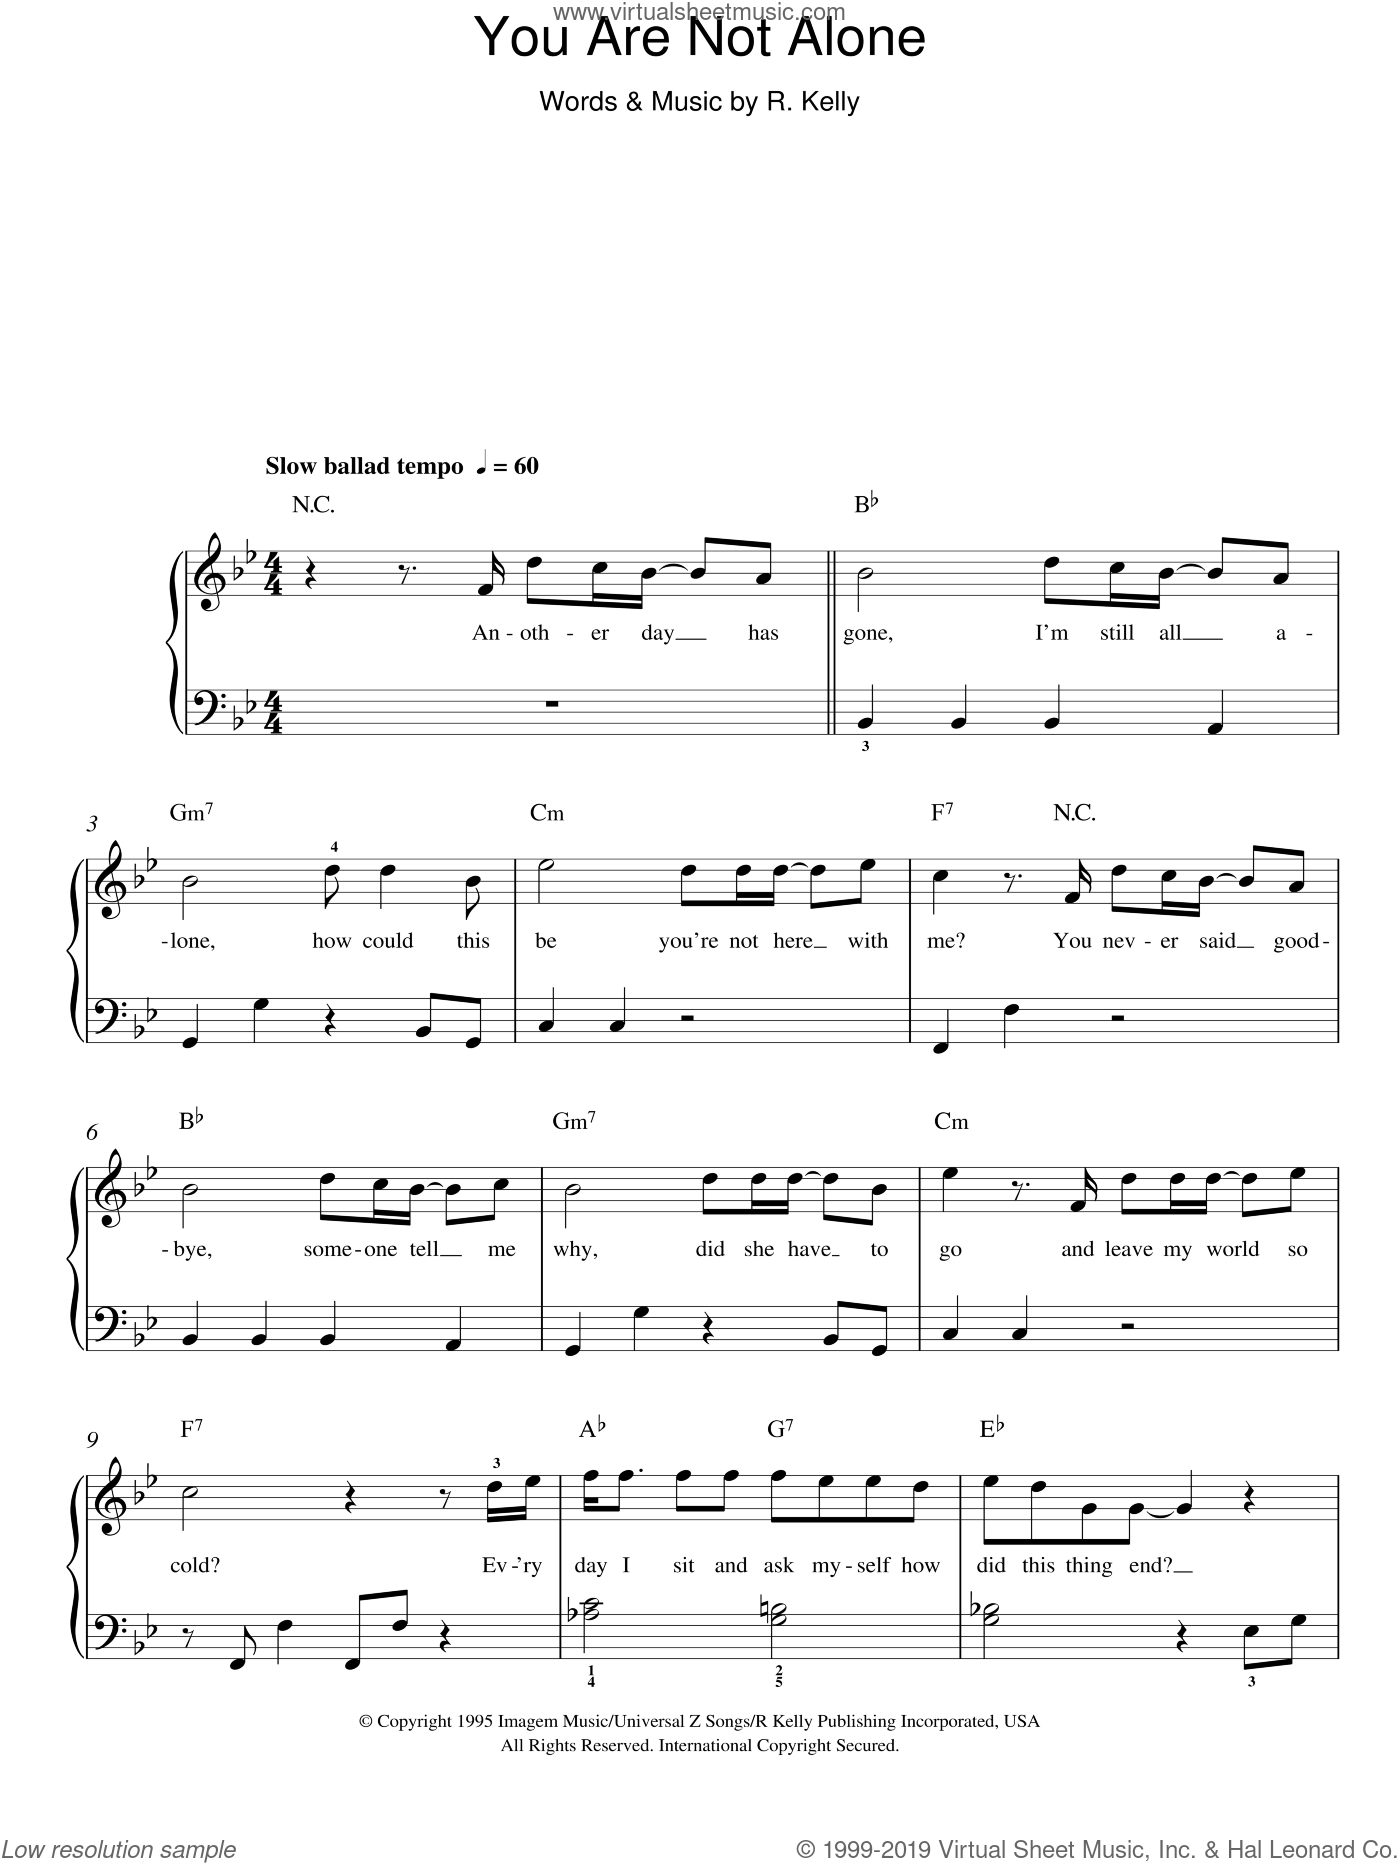 You Are Not Alone sheet music for piano solo by Michael Jackson and Robert Kelly, easy skill level